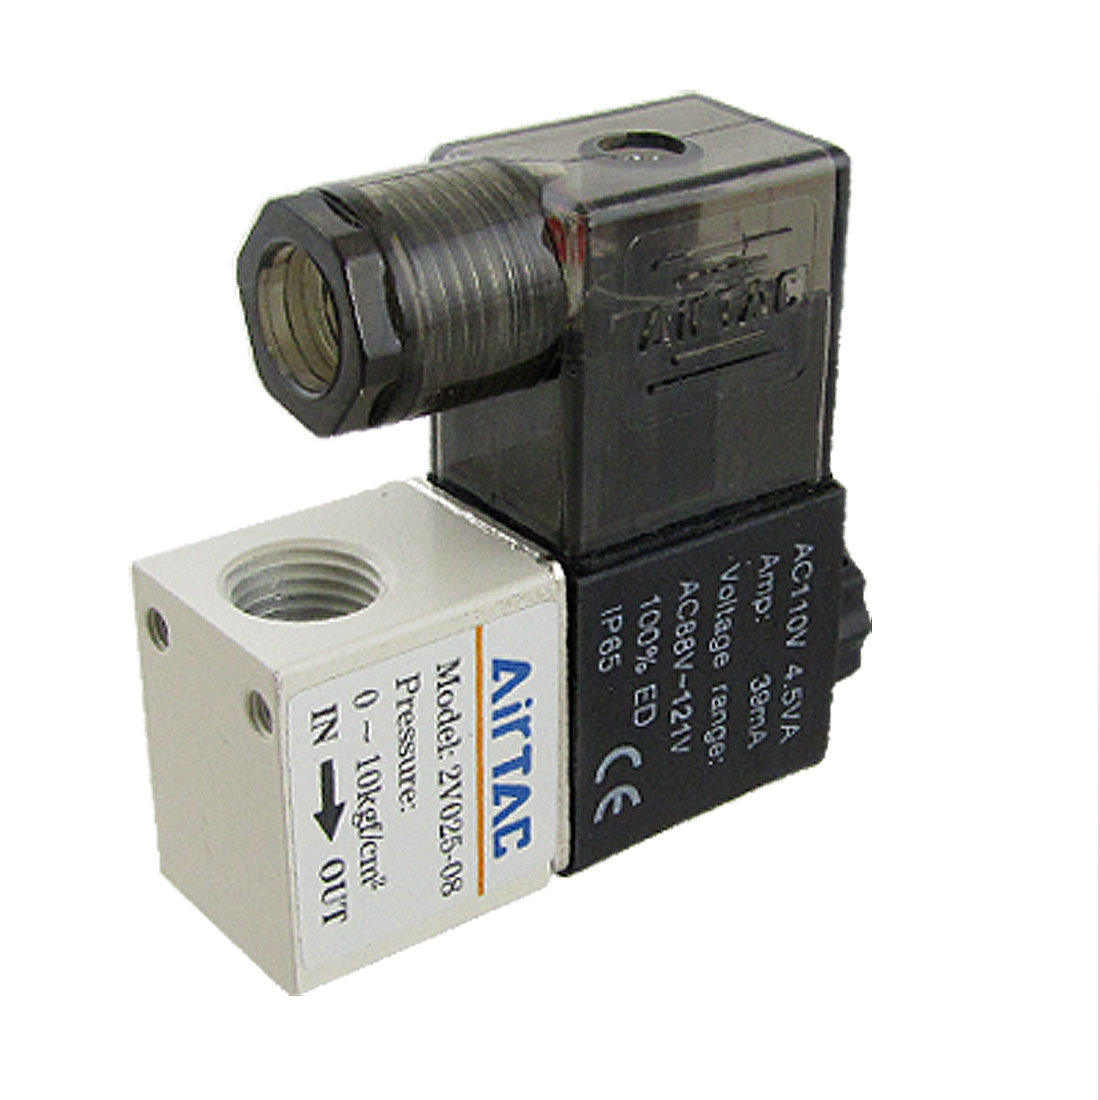 2V025-08 AC 110V 39mA 2 Position 2 Way Pneumatic Solenoid Valve